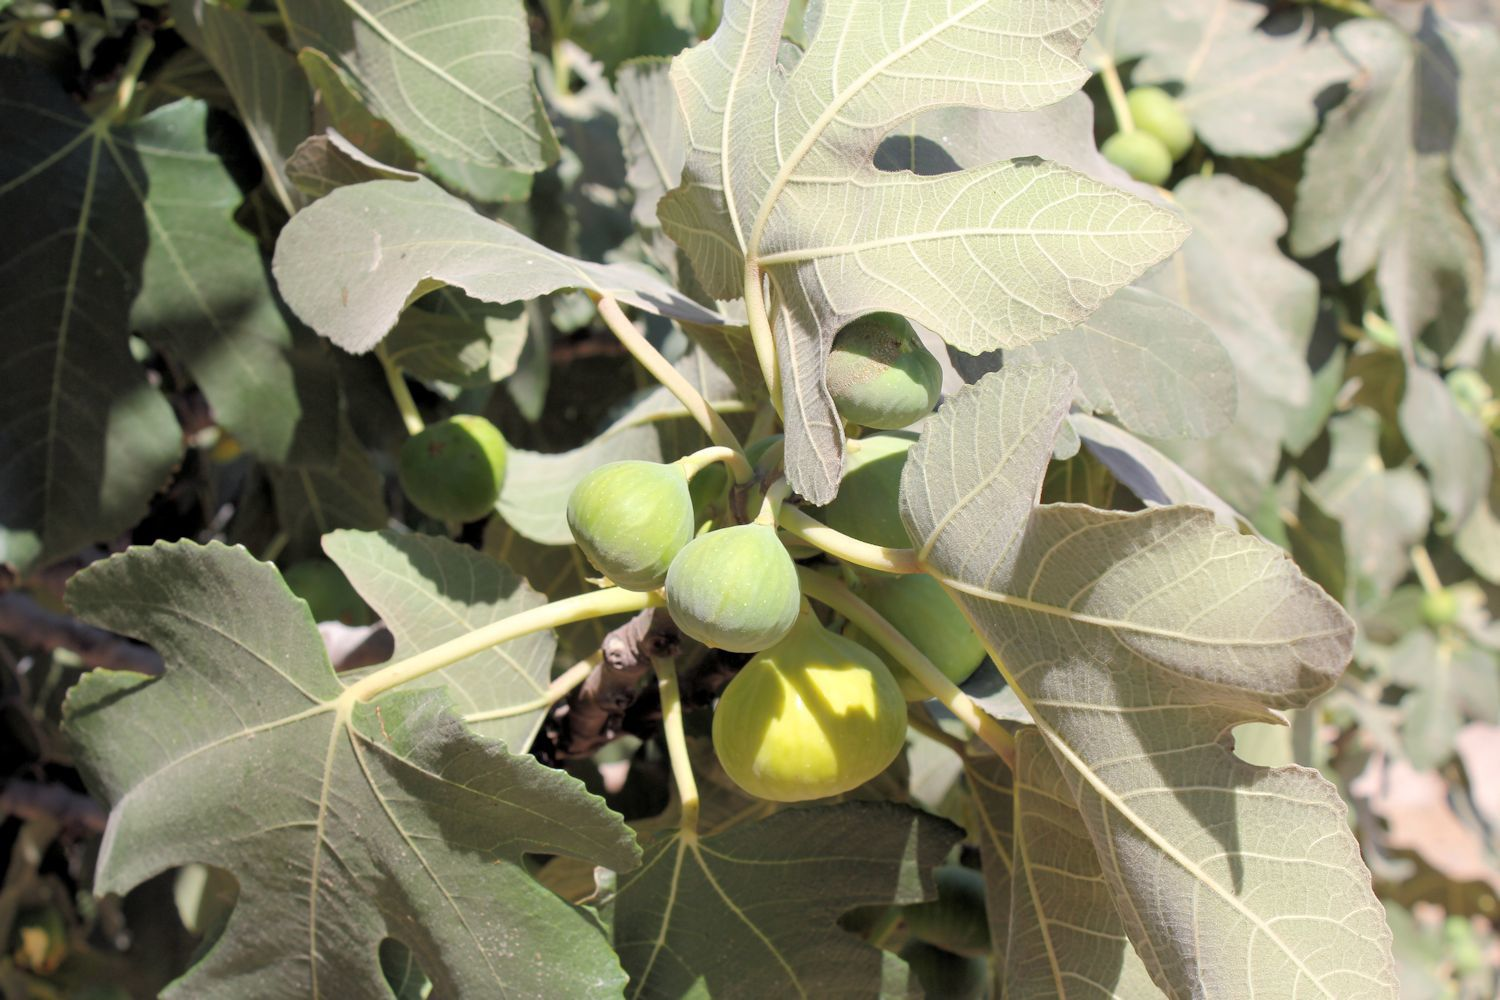 Leaves and green fruit on common fig tree